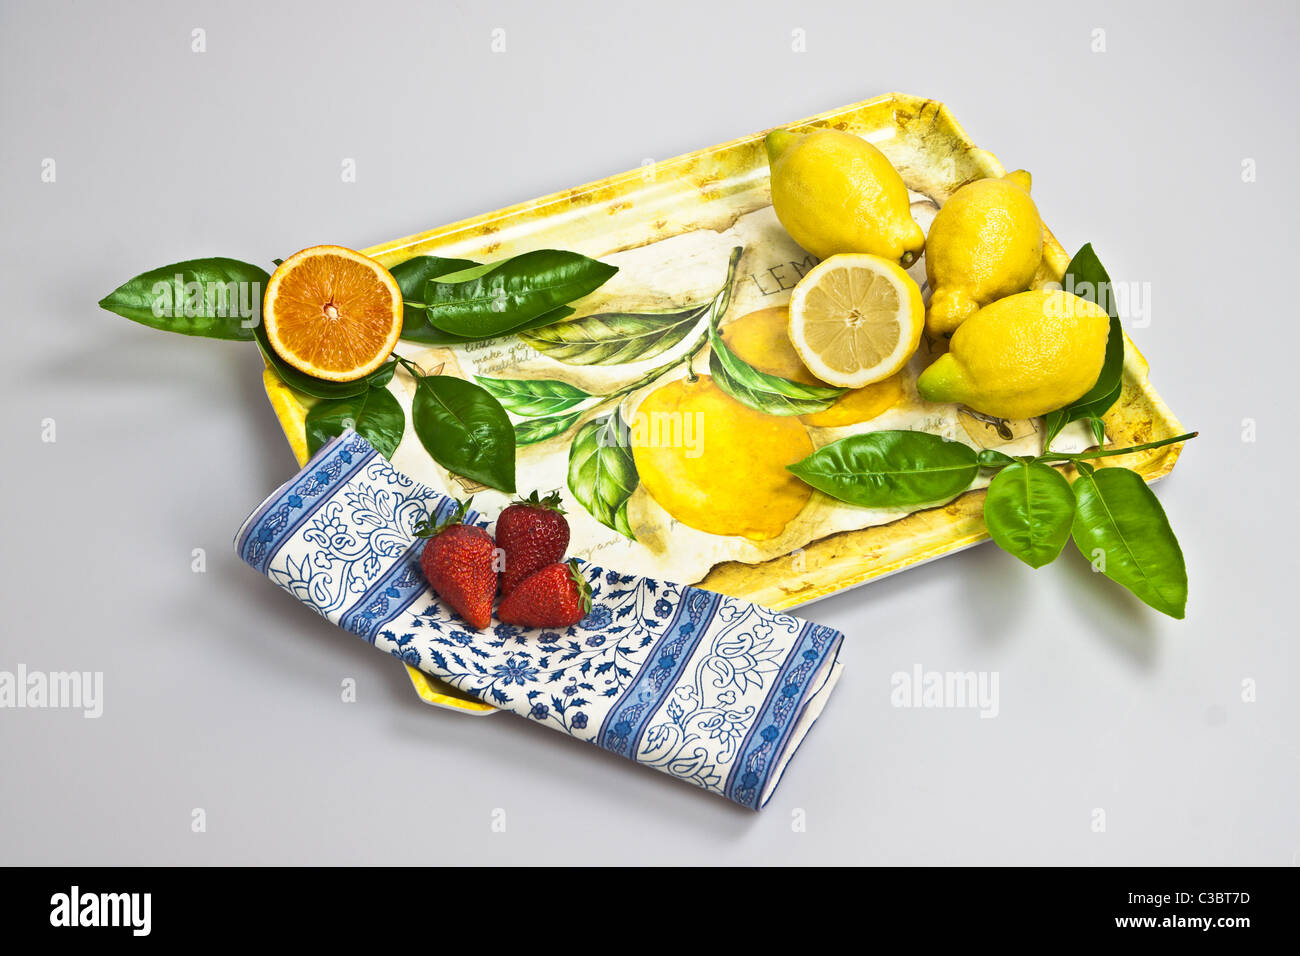 a tray with orange, lemons and strawberries - Stock Image